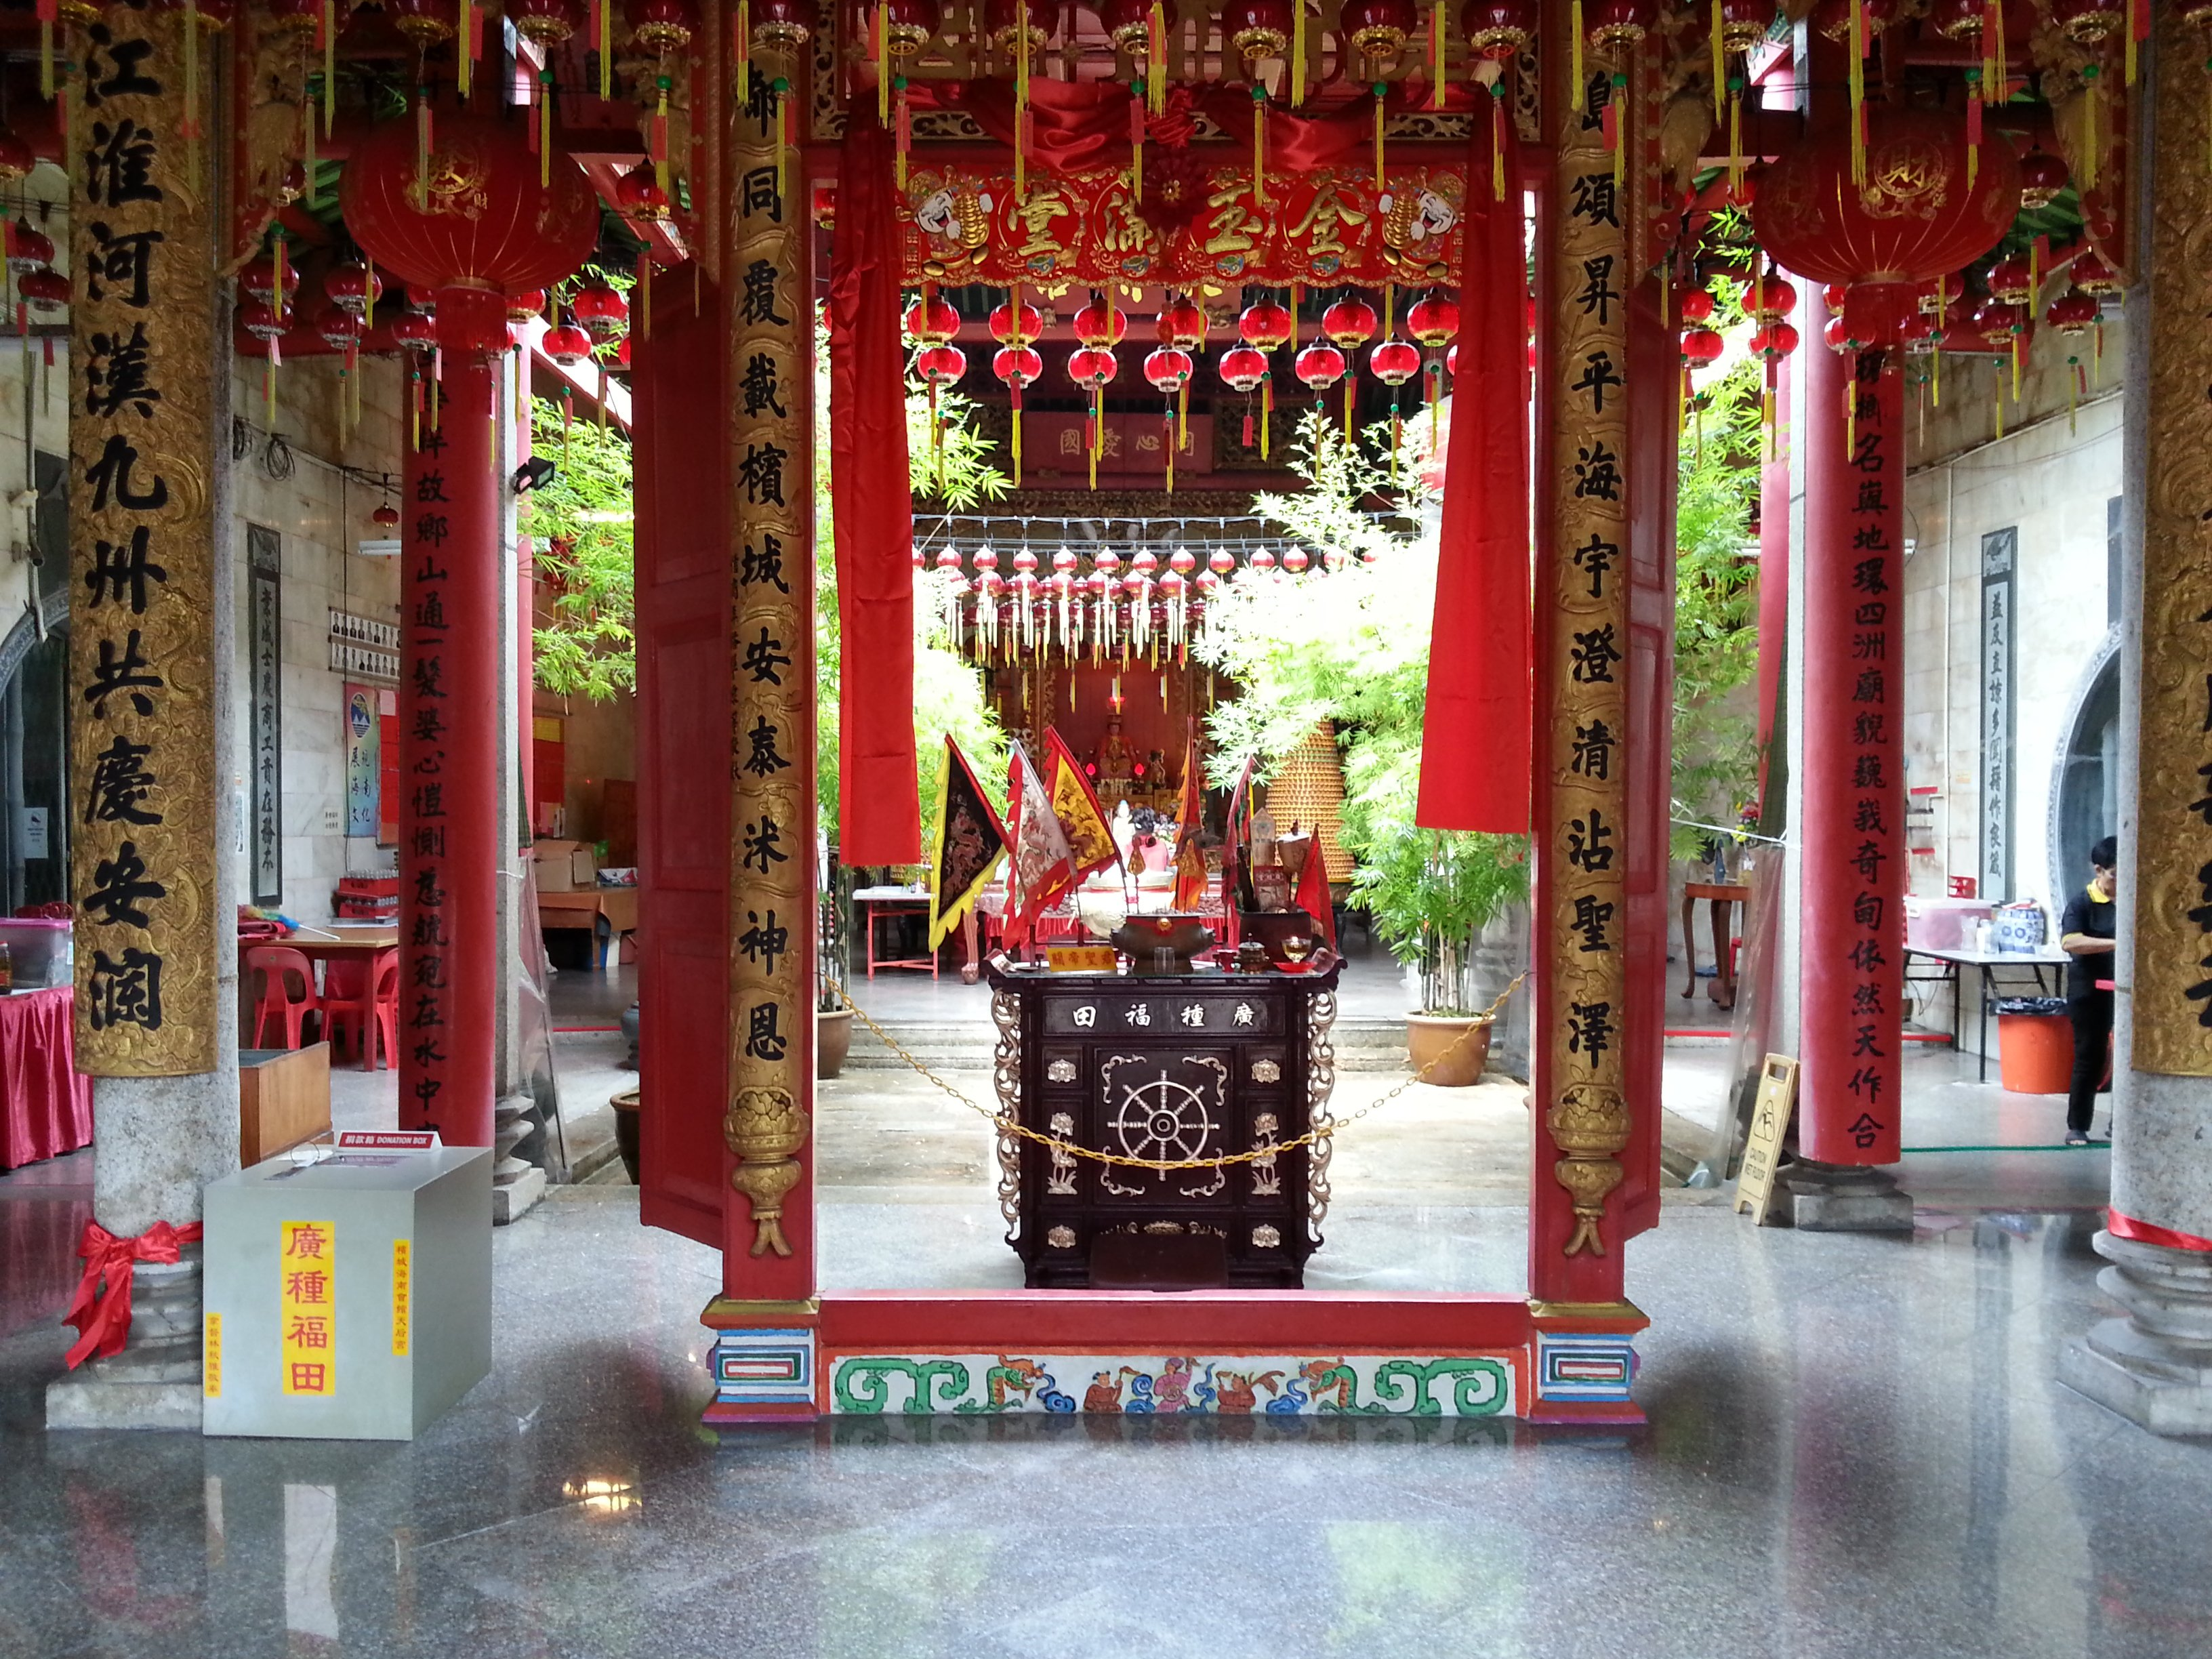 Inside the Hainan Temple on Muntri Street